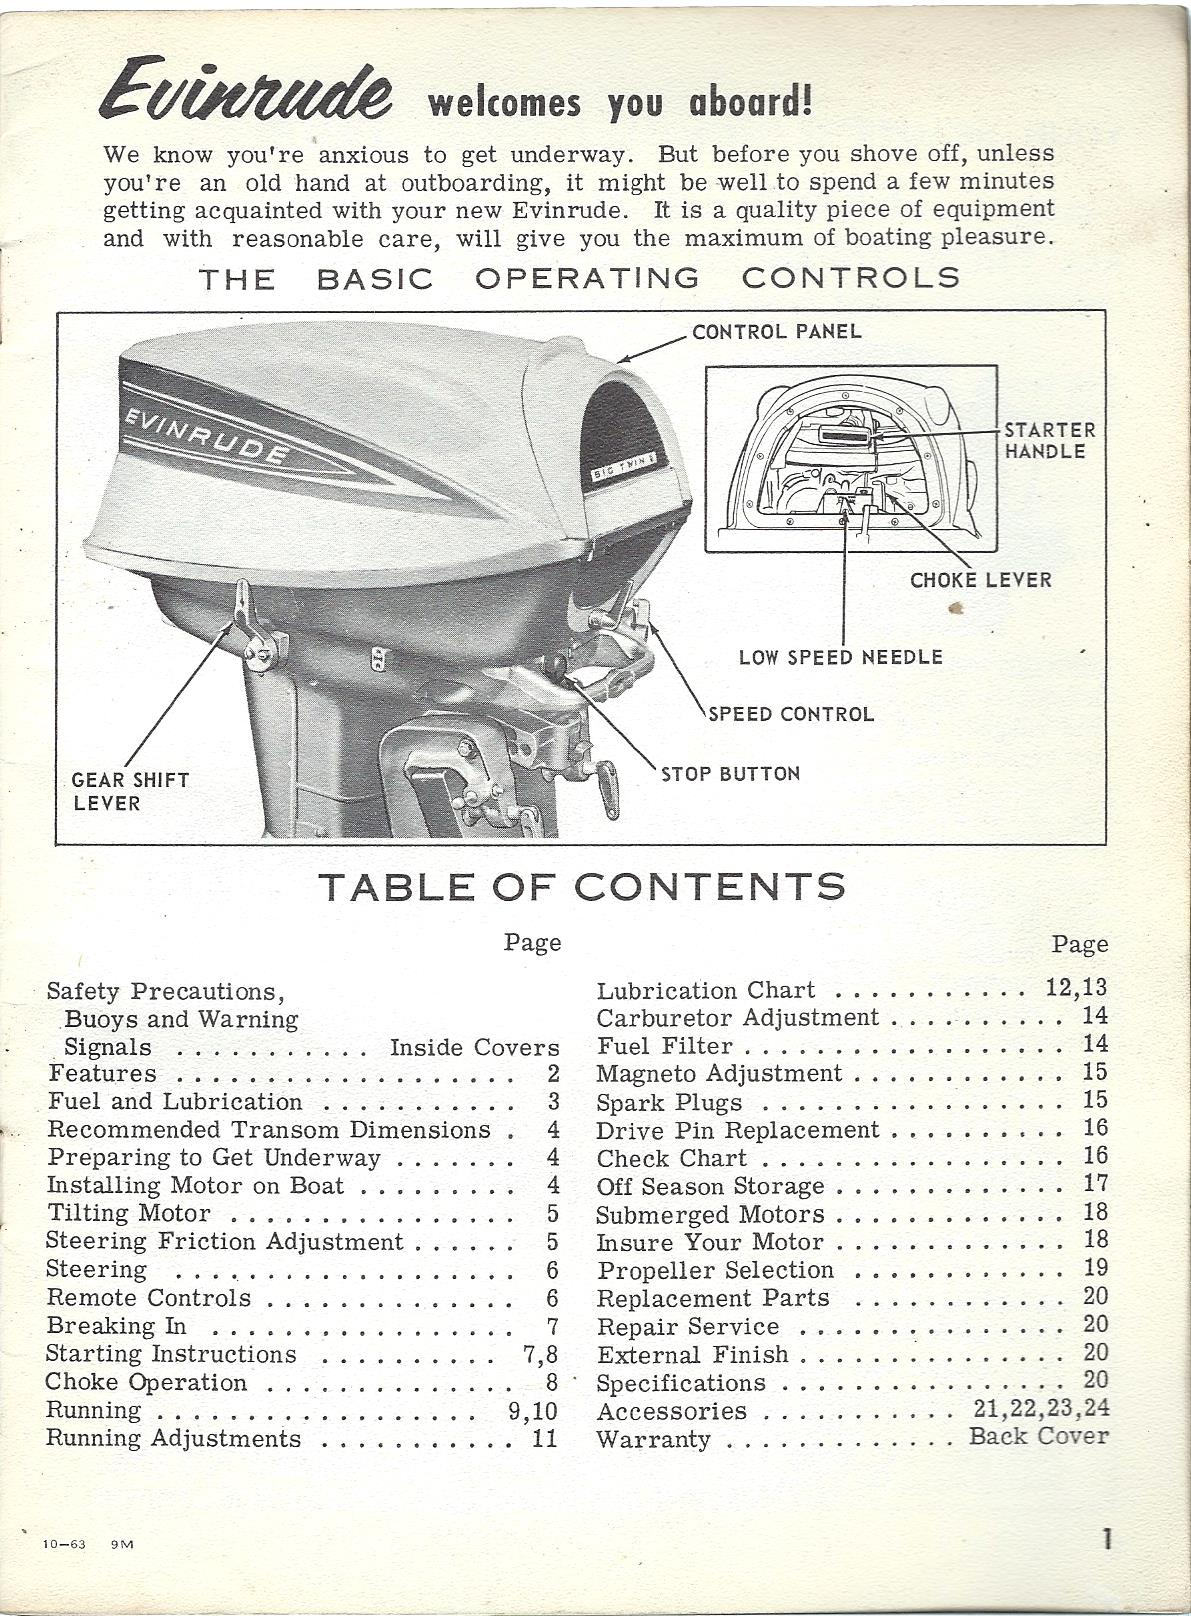 Evinrude Owners Manual 1964 40hp Big Twin Model 40402 And